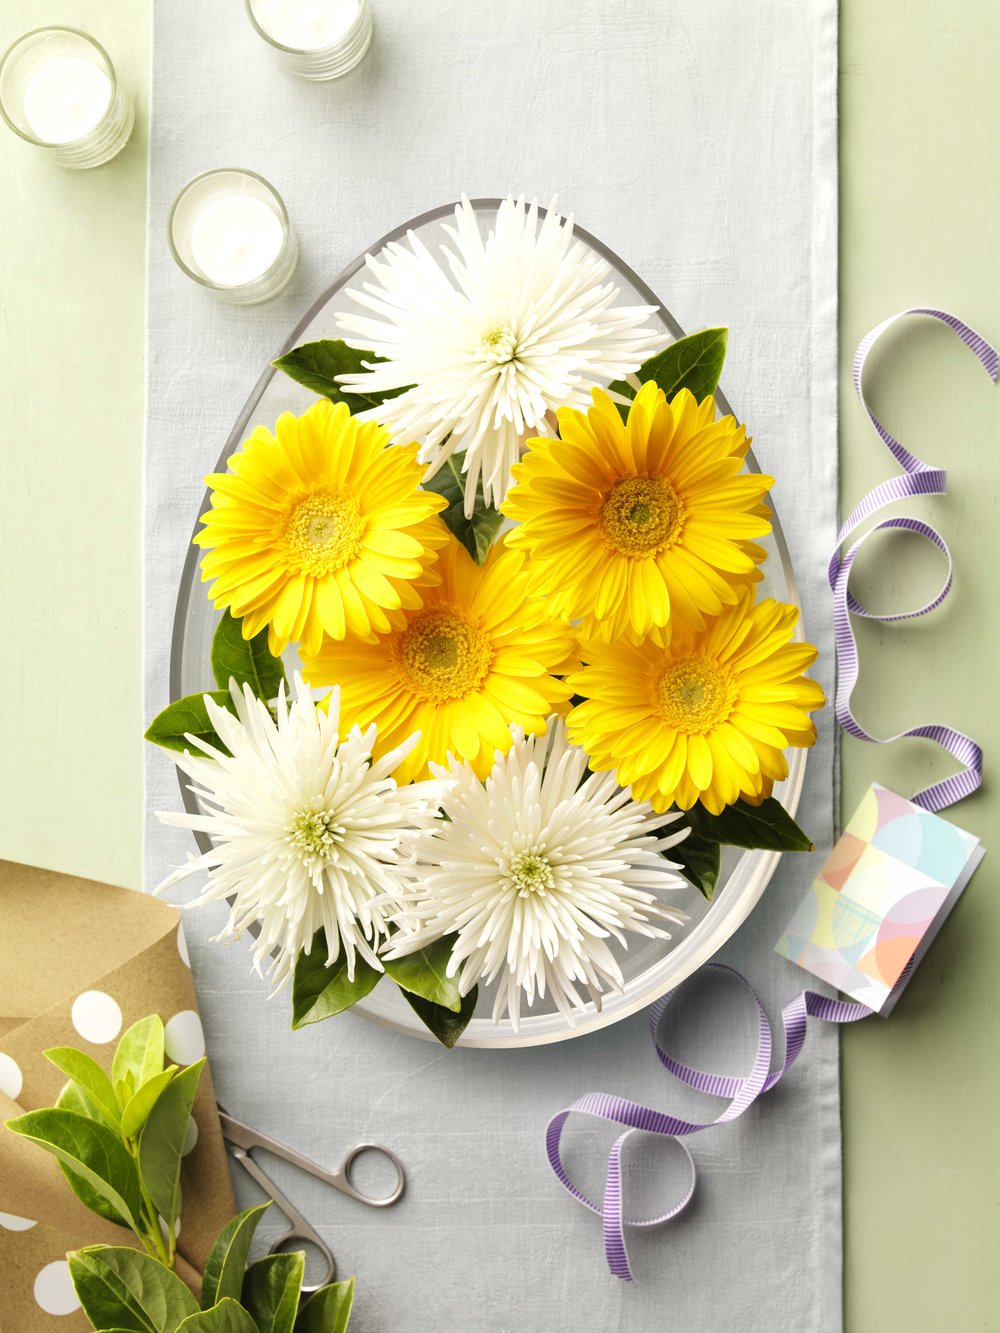 Flowers_EggPlate_HR_FINAL2.jpg